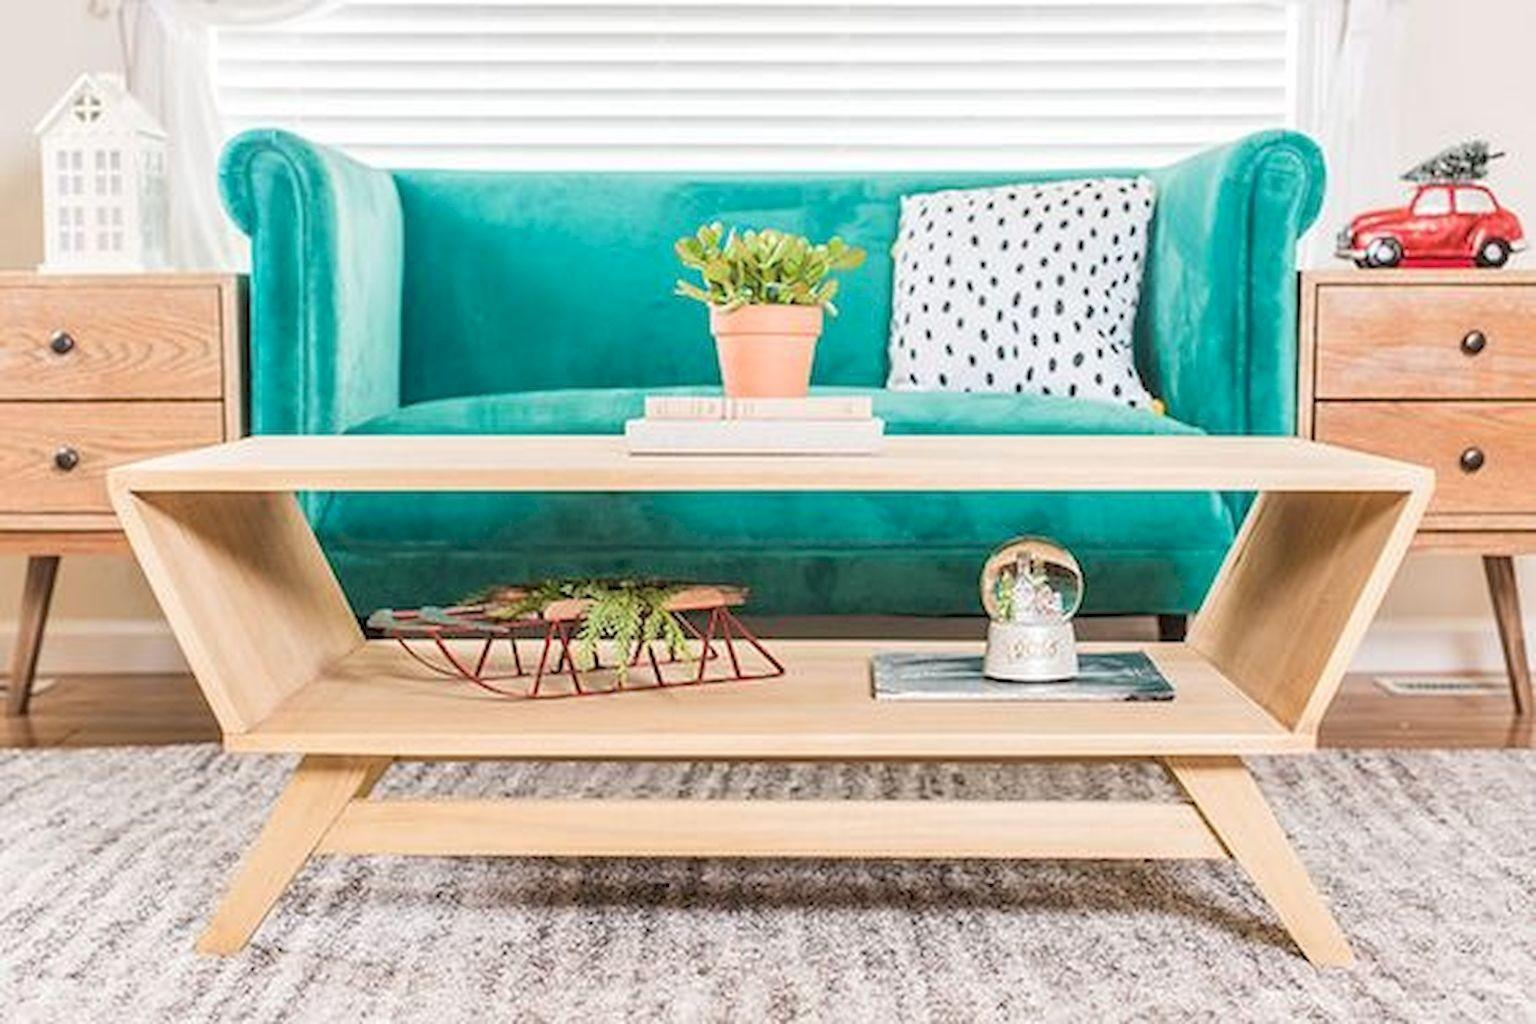 Diy Apartment Coffee Table Makeover Ideas Livingmarch